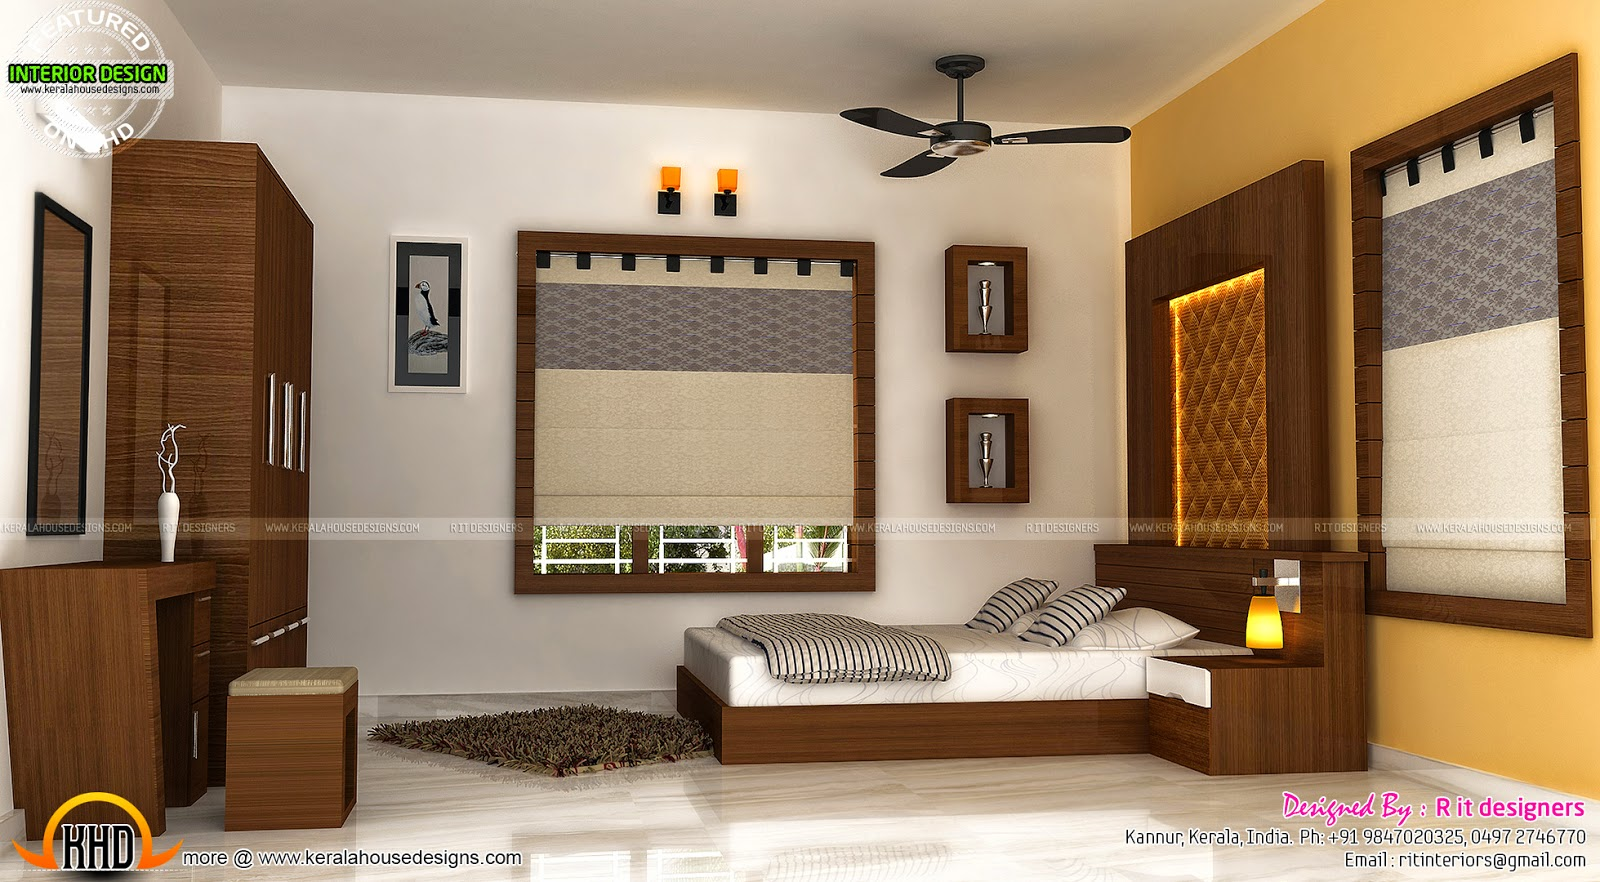 Staircase bedroom dining interiors kerala home design - Interior home design pic ...